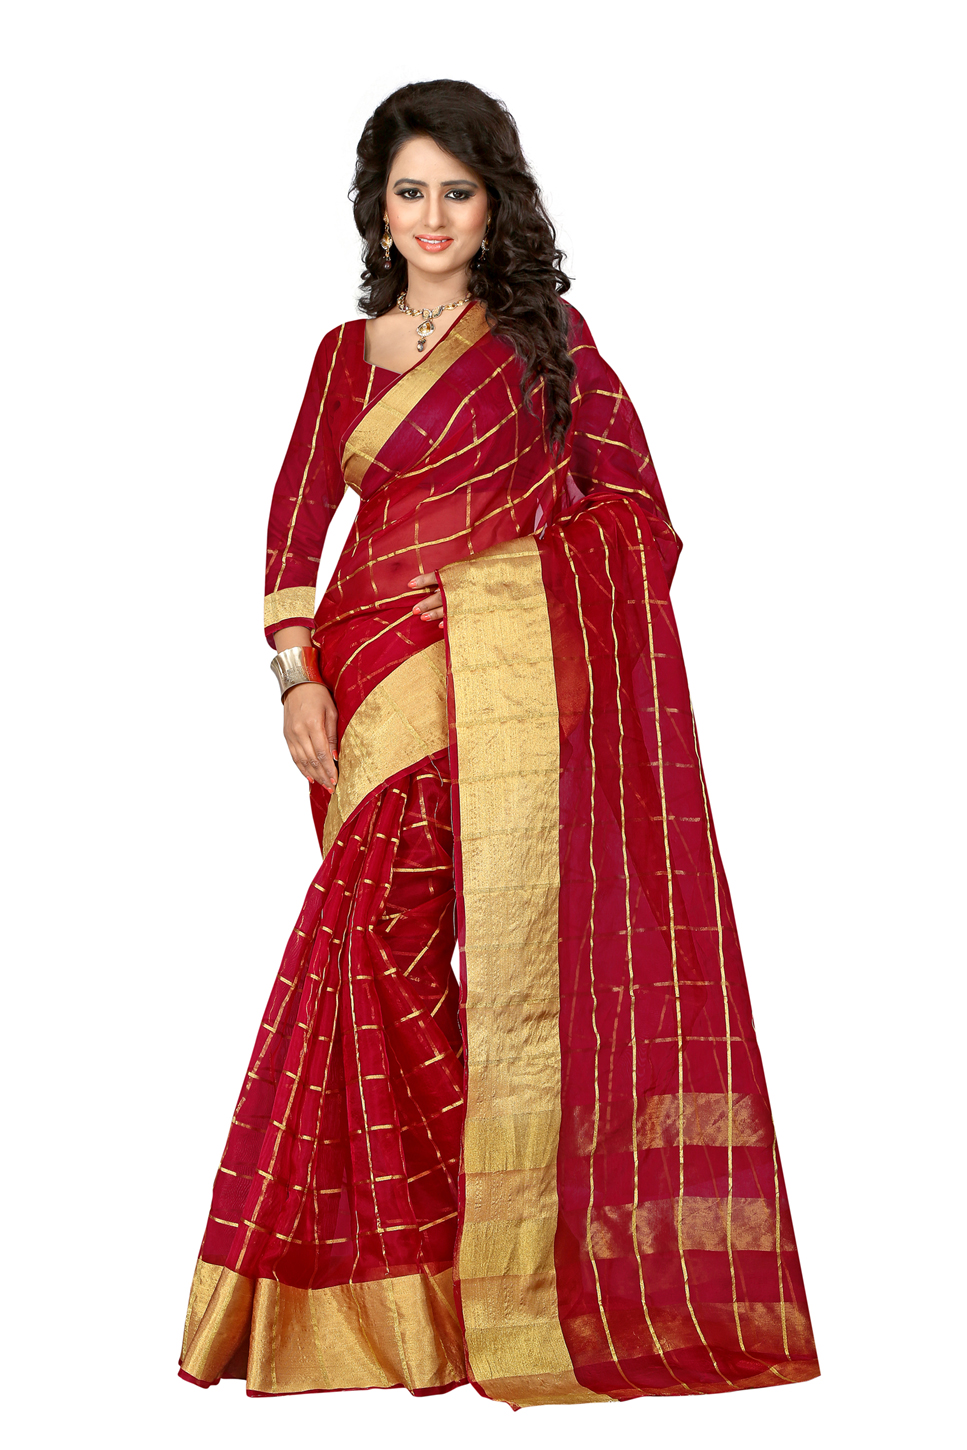 uniqueclub Unique Fashion Club Present New Designer Color: Red Cotton Silk Sarees With Unstiched Blouse Piece